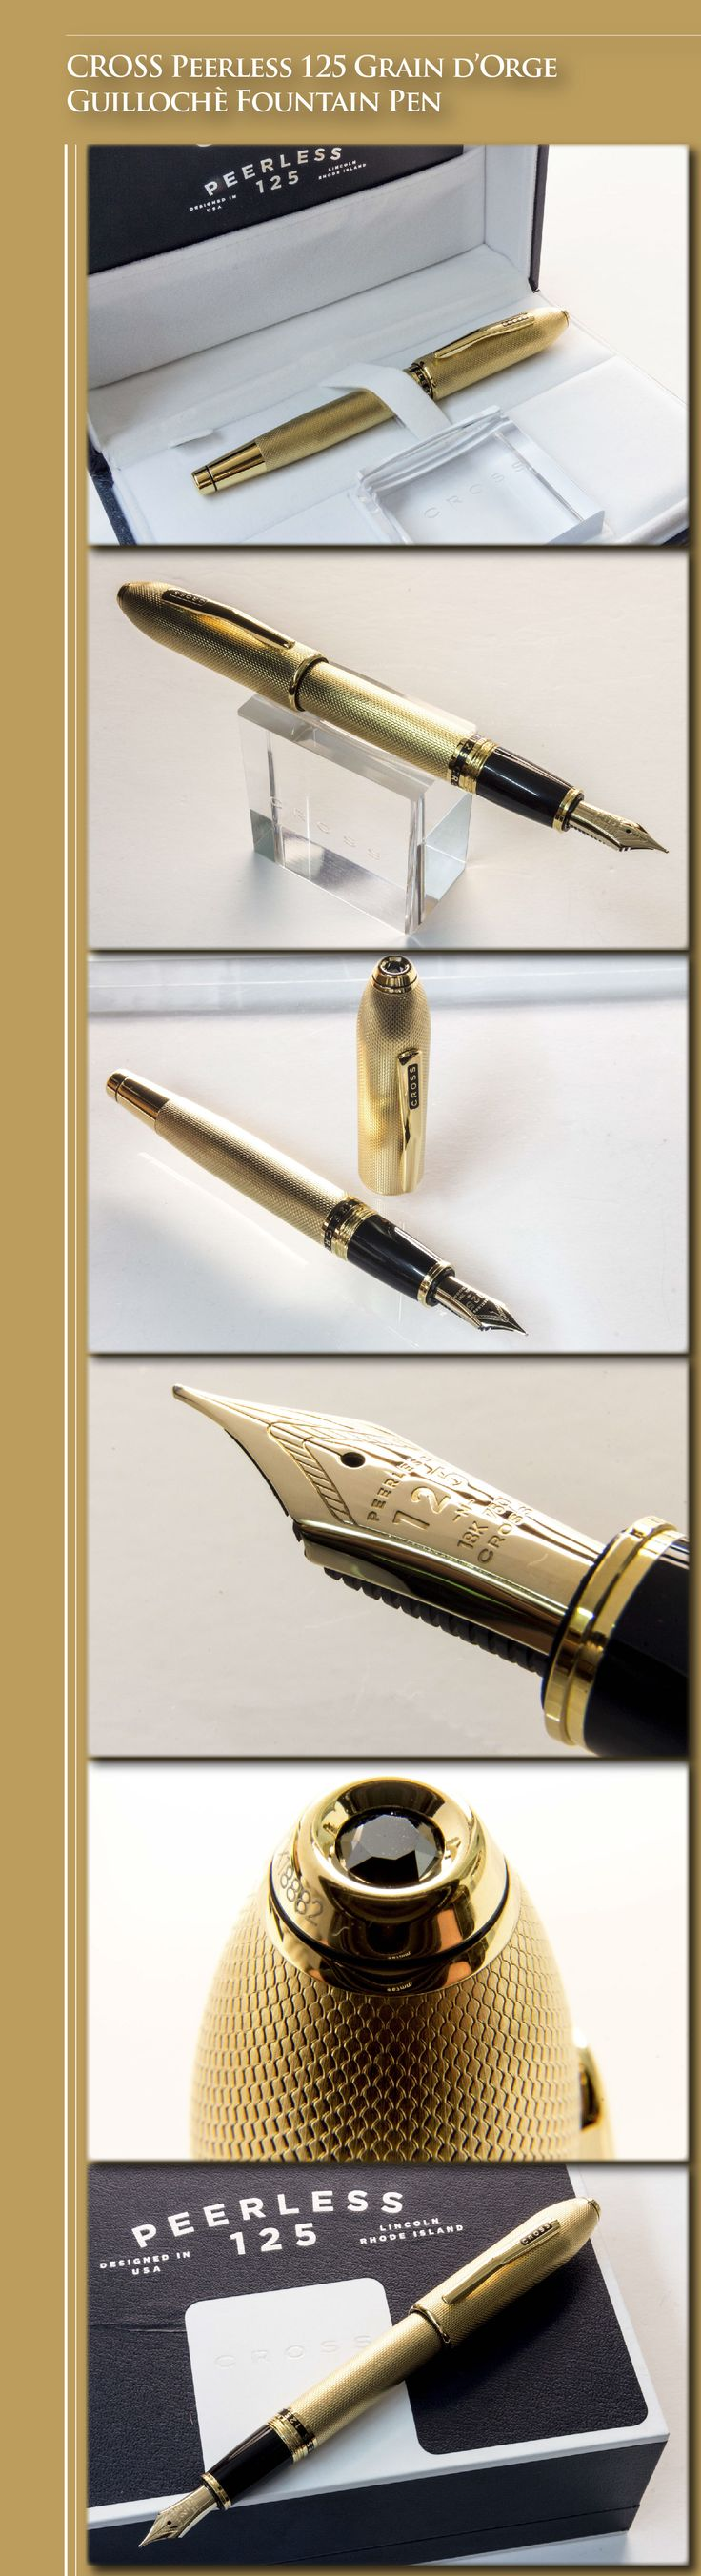 CROSS Peerless 125 Grain d'Orge Guillochè Fountain Pen (metal body 23kt gold-plated, gold-plated trim, 18kt gold nob) - 2014 / USA